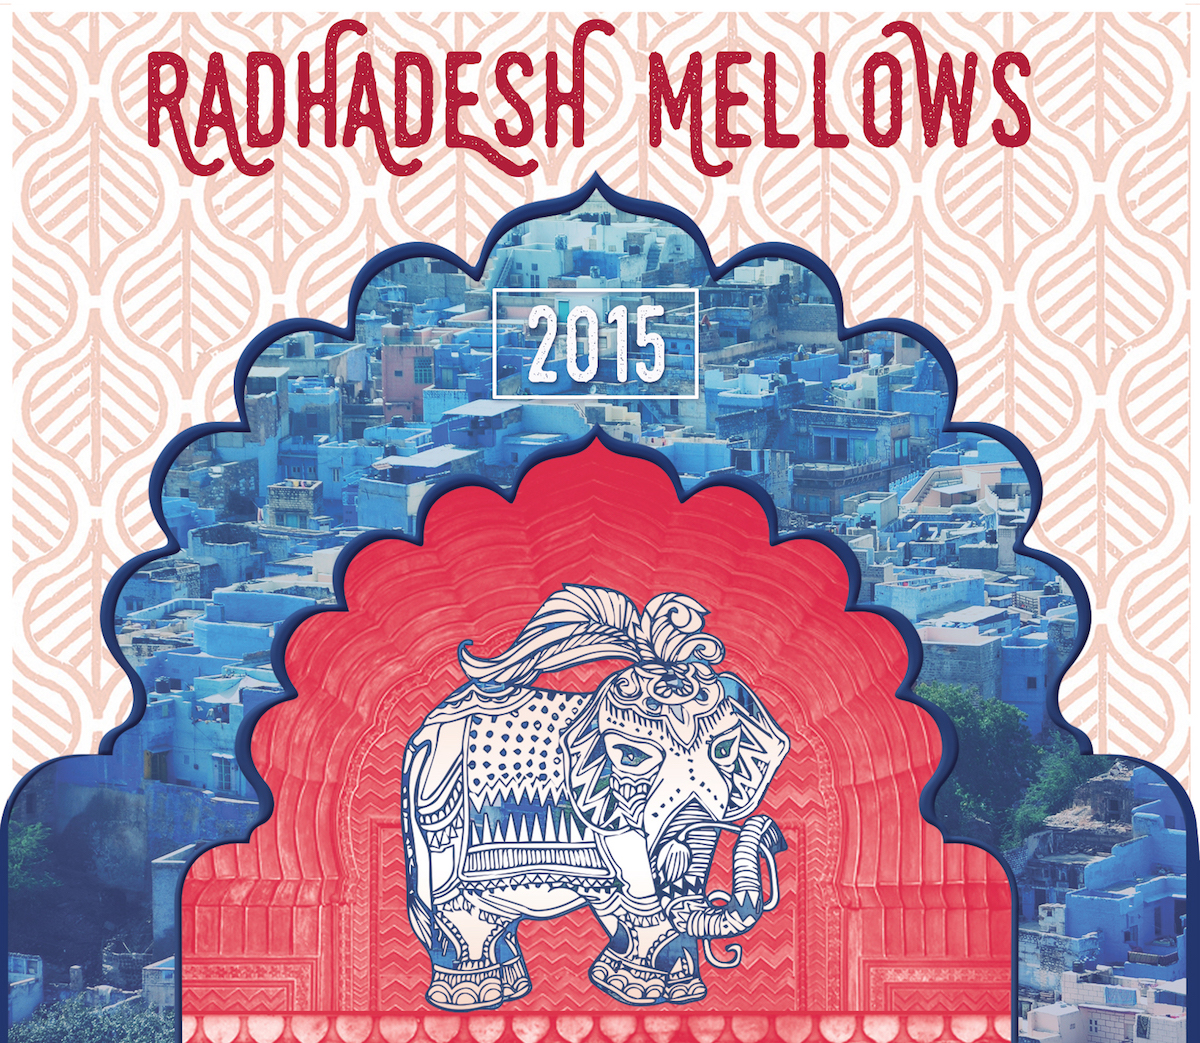 Radhadesh Mellows 2015 Cover